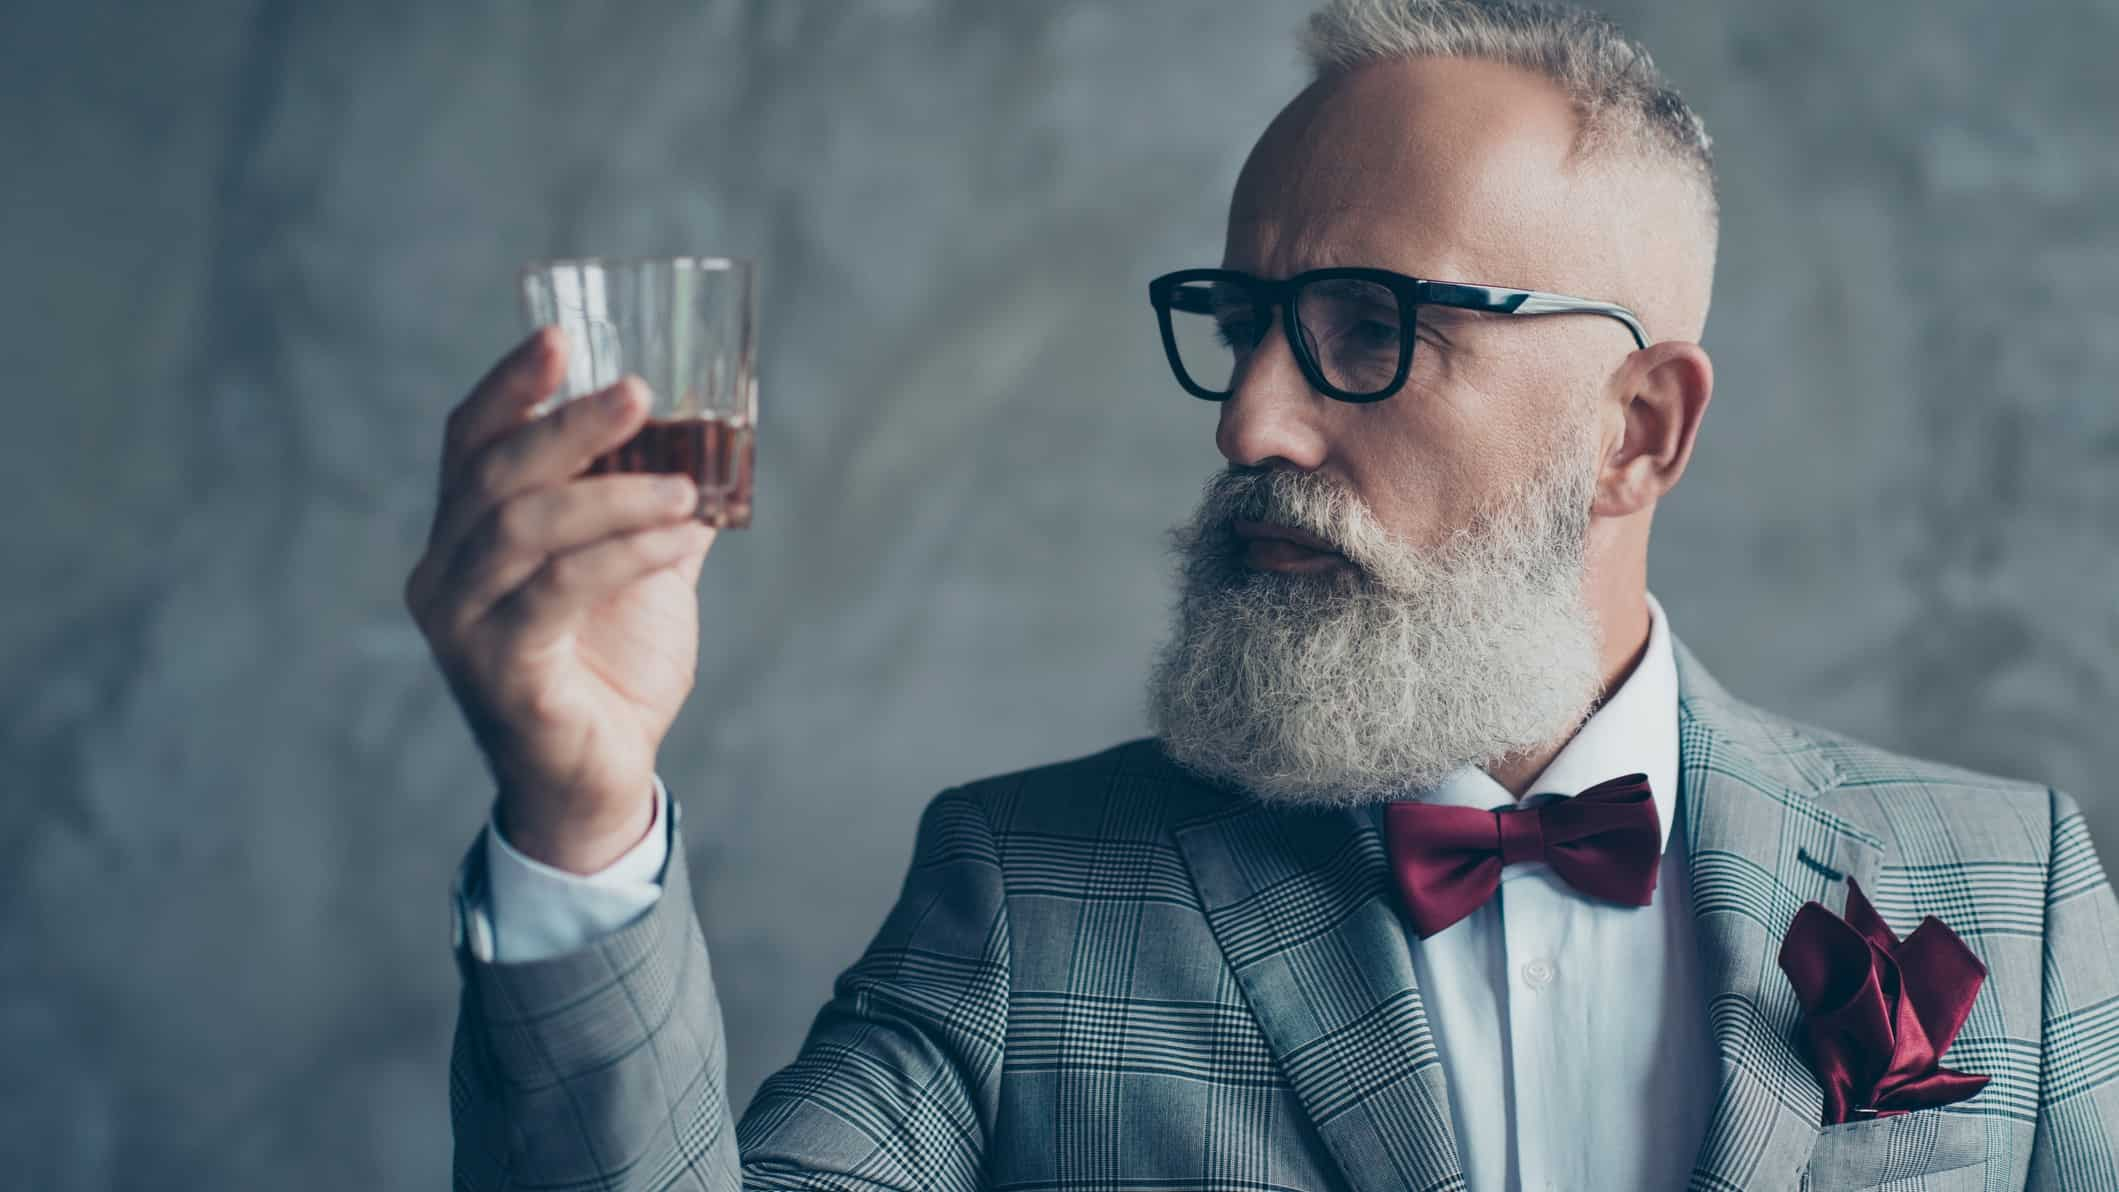 A hipster man holds up a glass of whiskey, indicating a share price watch for ASX wine and gin producers